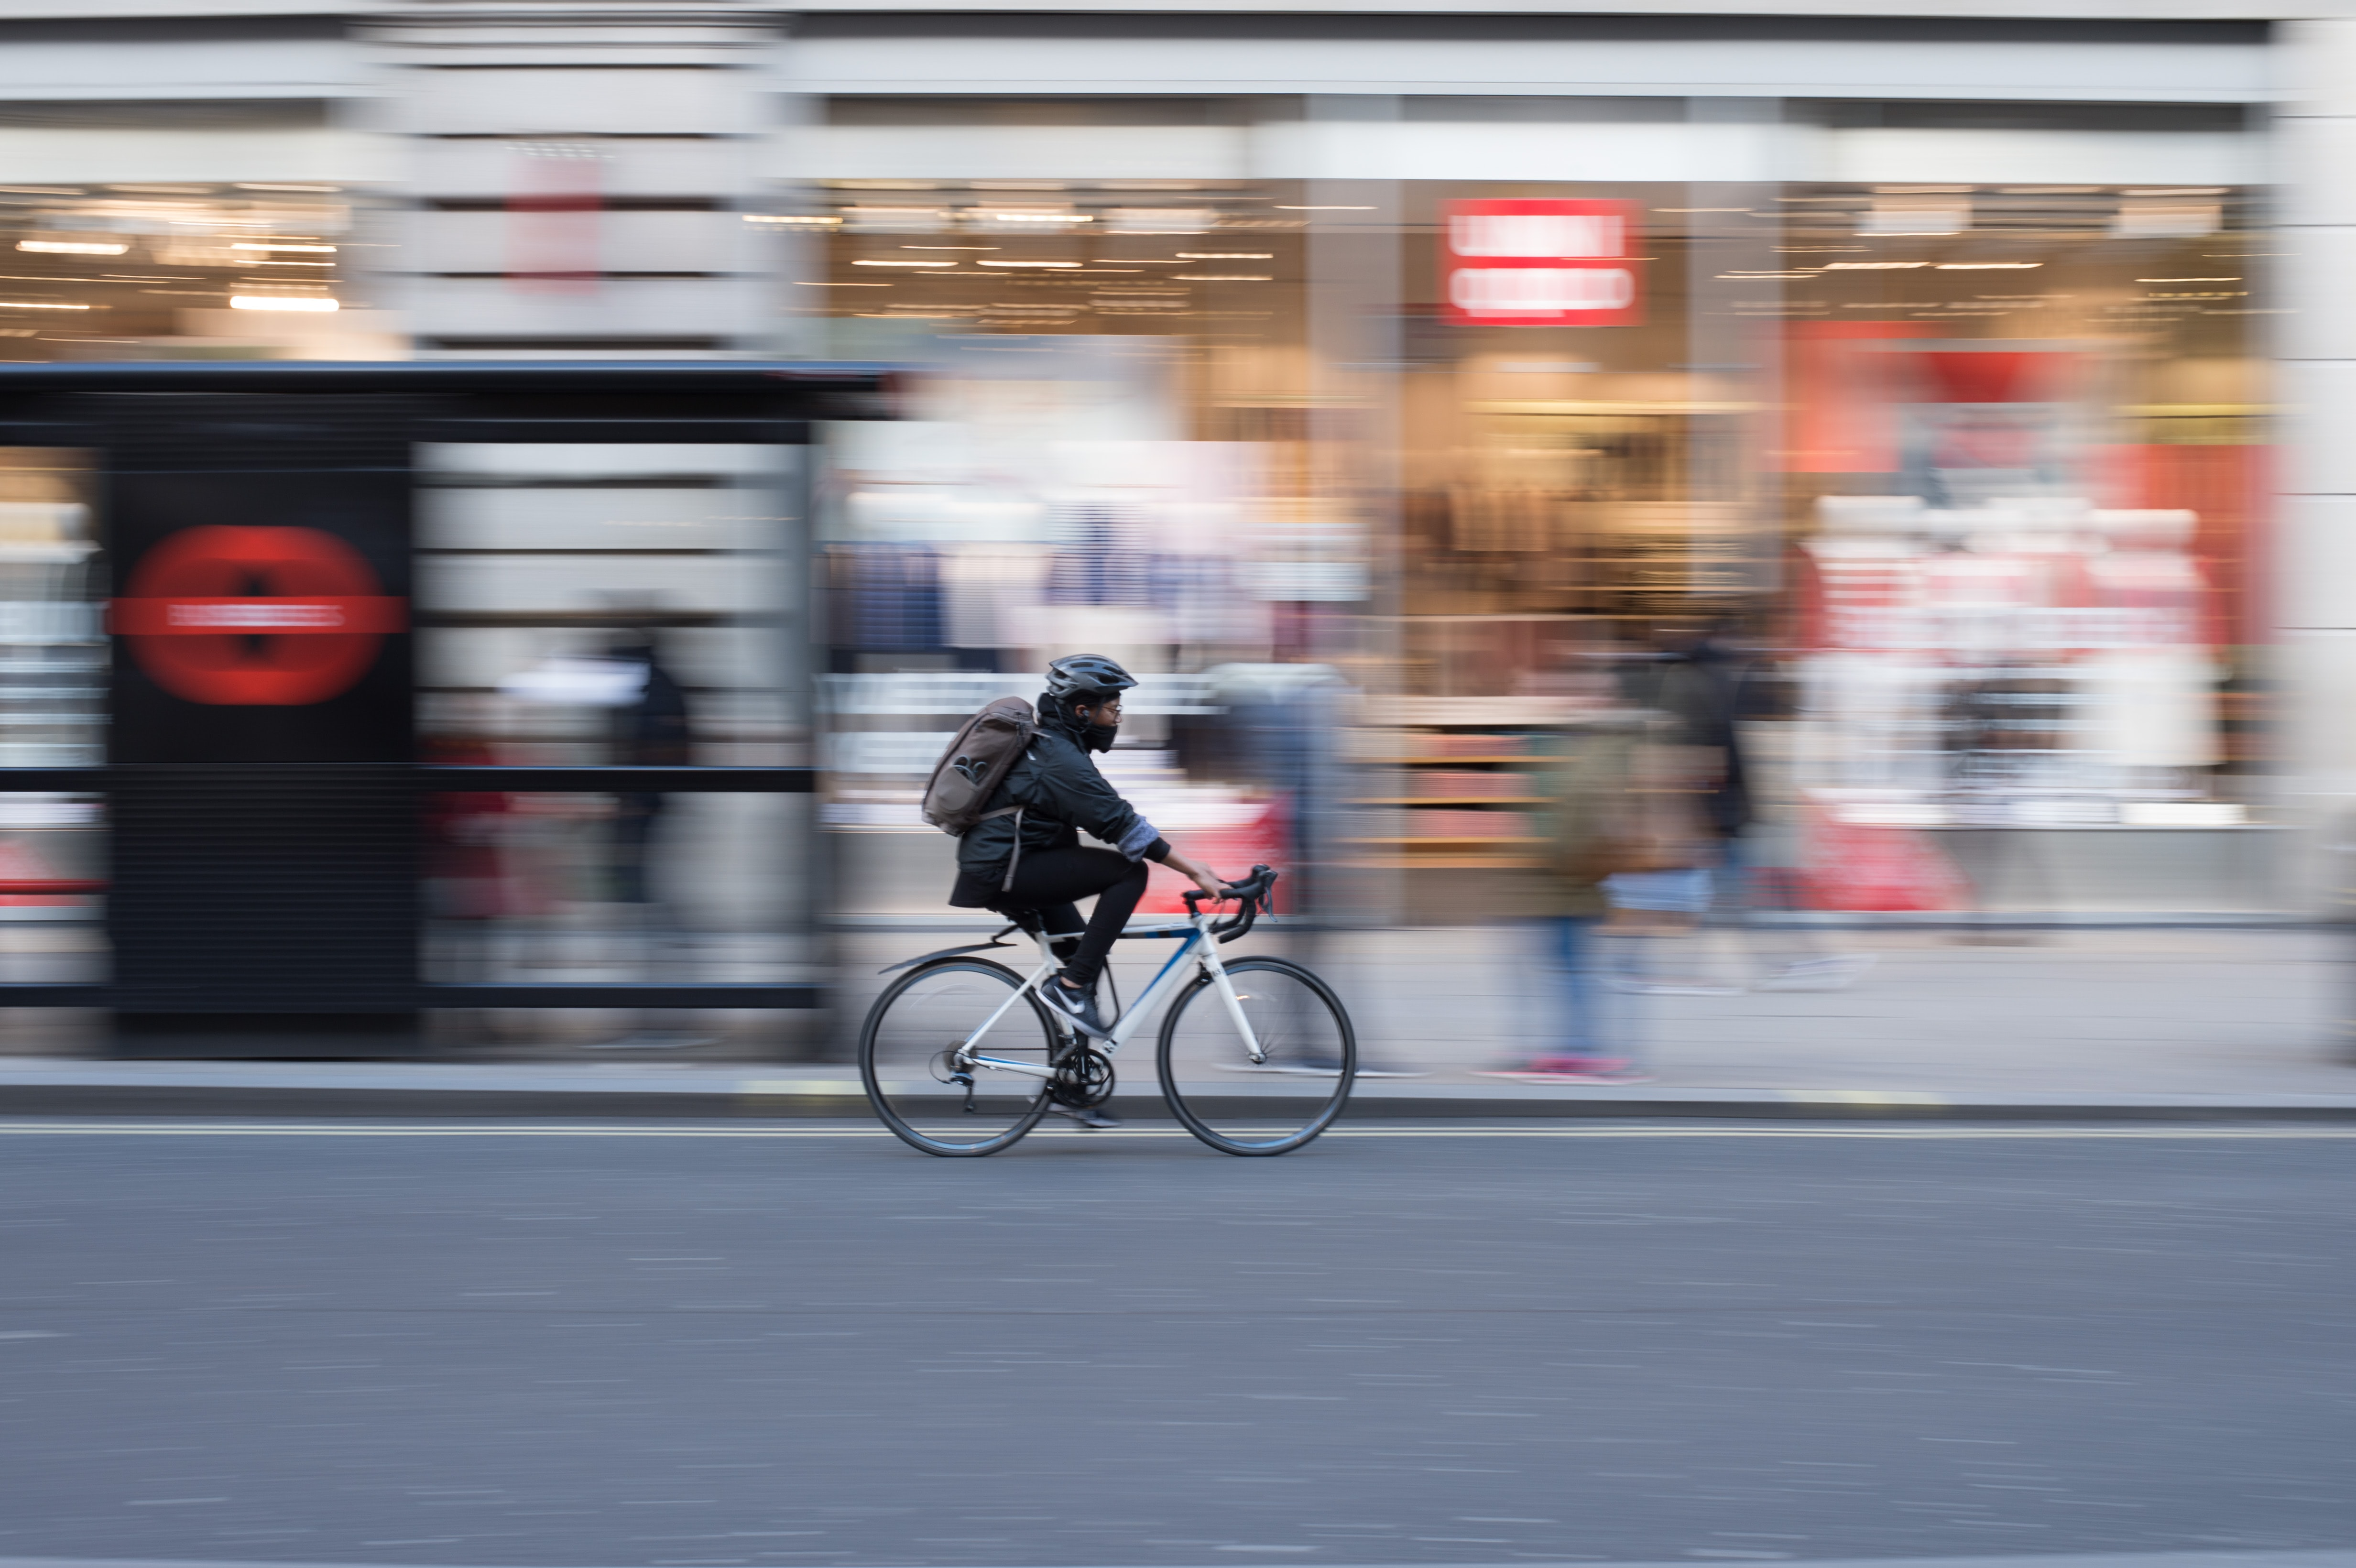 Person riding a bicycle on a city street